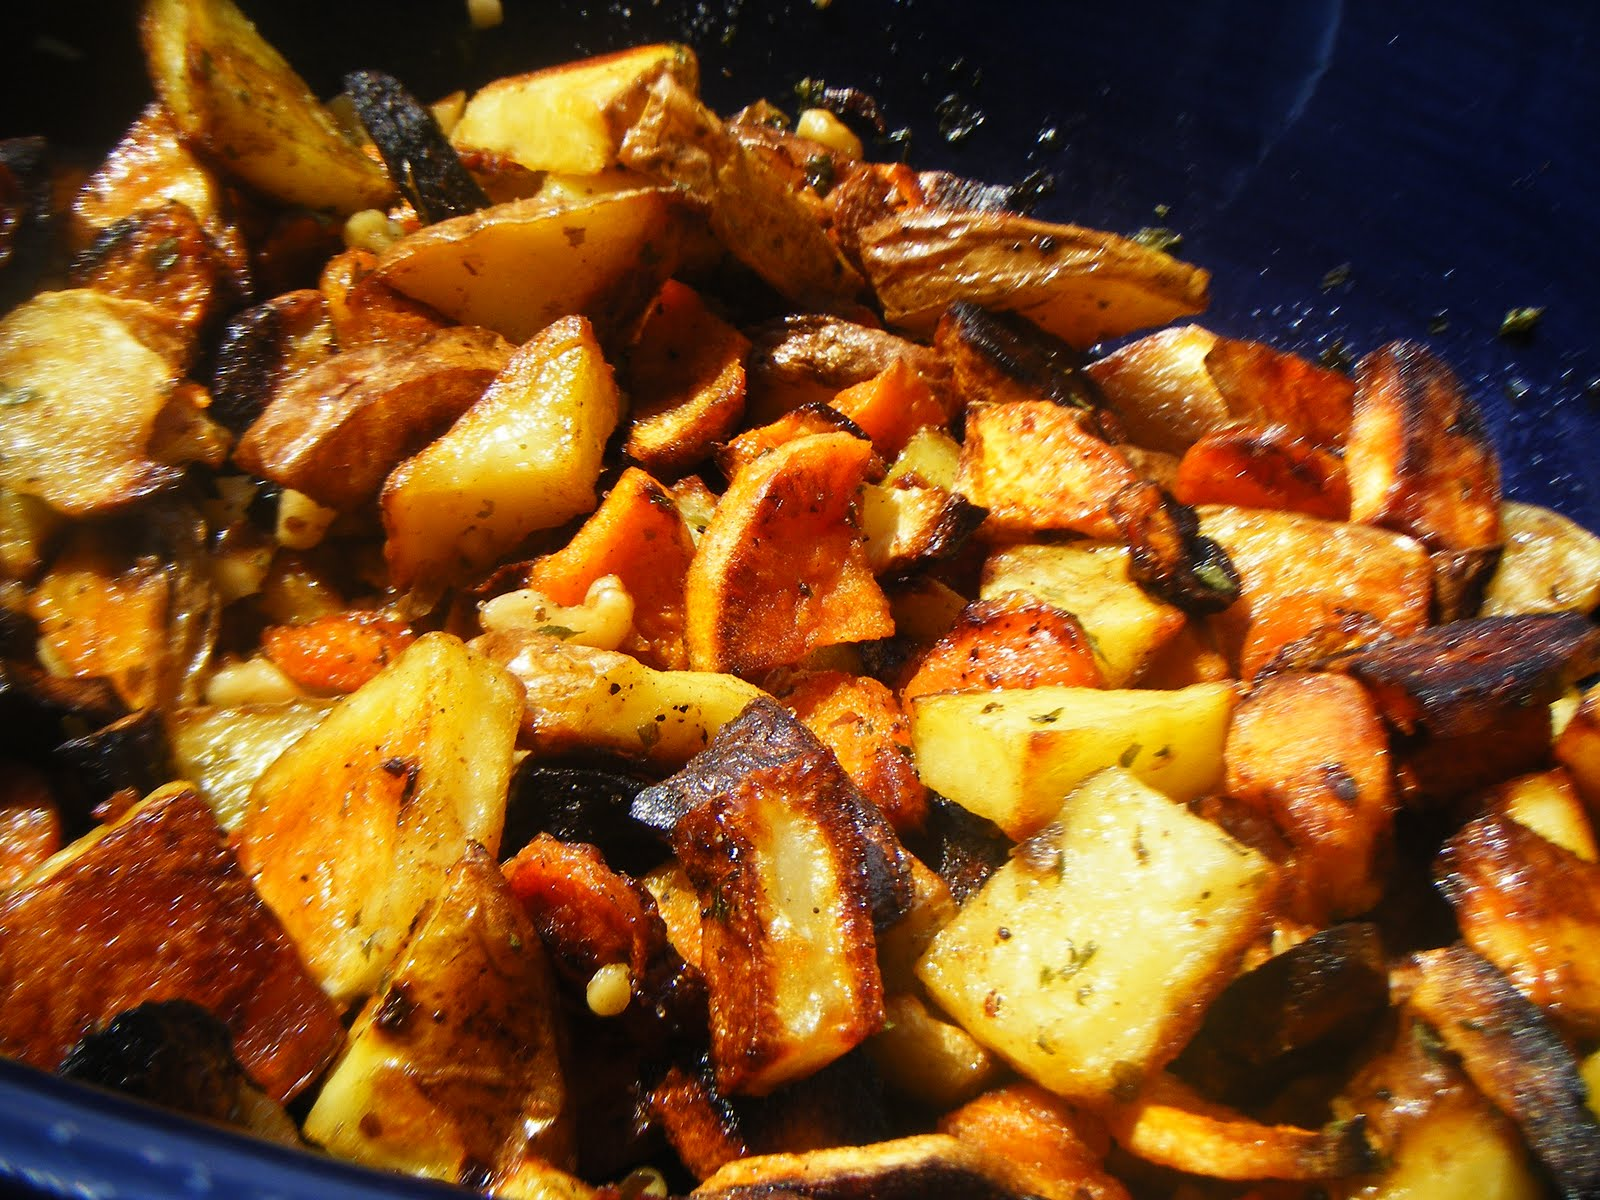 Garlic Escapes: Oven-Roasted Root Vegetables and Garlic